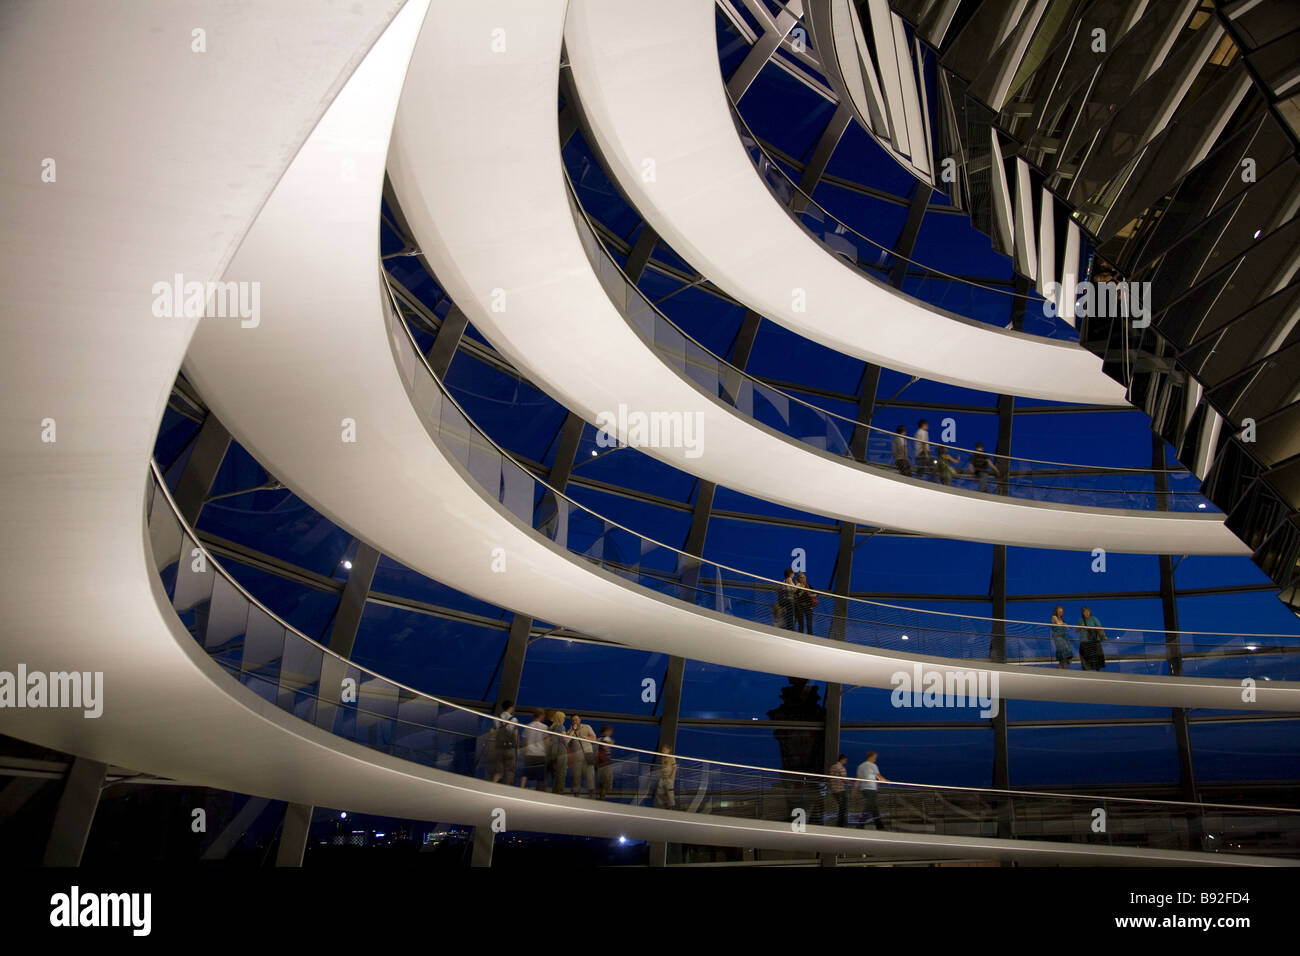 The glass dome atop the Reichstag where visitors can observe the Bundestag the lower house of the German parliament - Stock Image